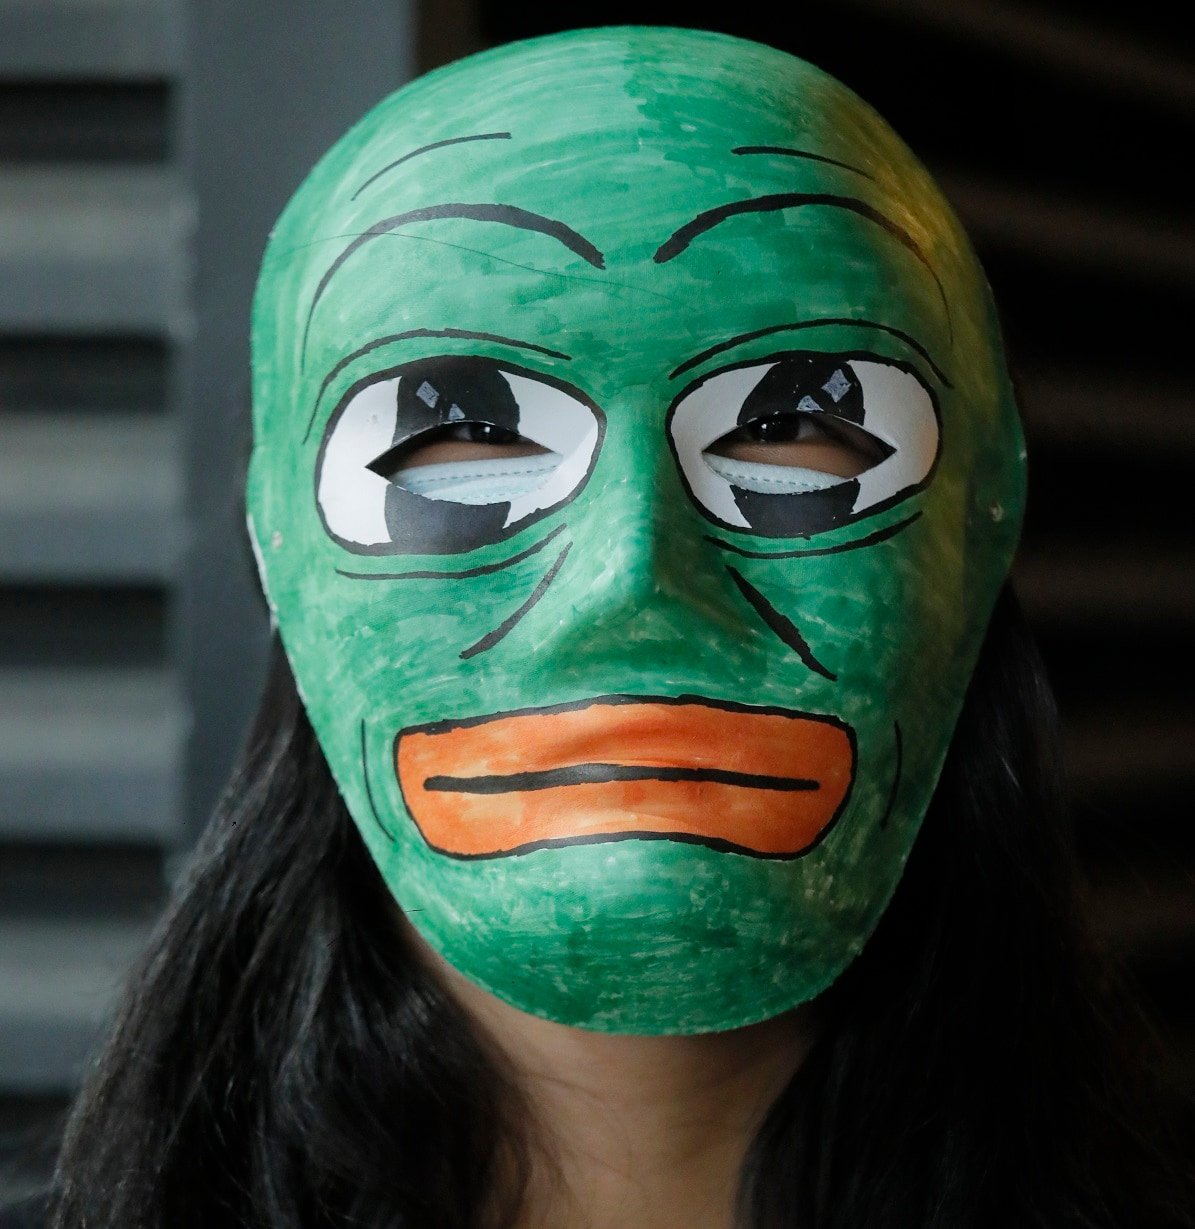 Some became Pepe the Frog, a character adopted by Hong Kong protesters unaware of its association with US far-right extremists. (AP Photo/Kin Cheung)